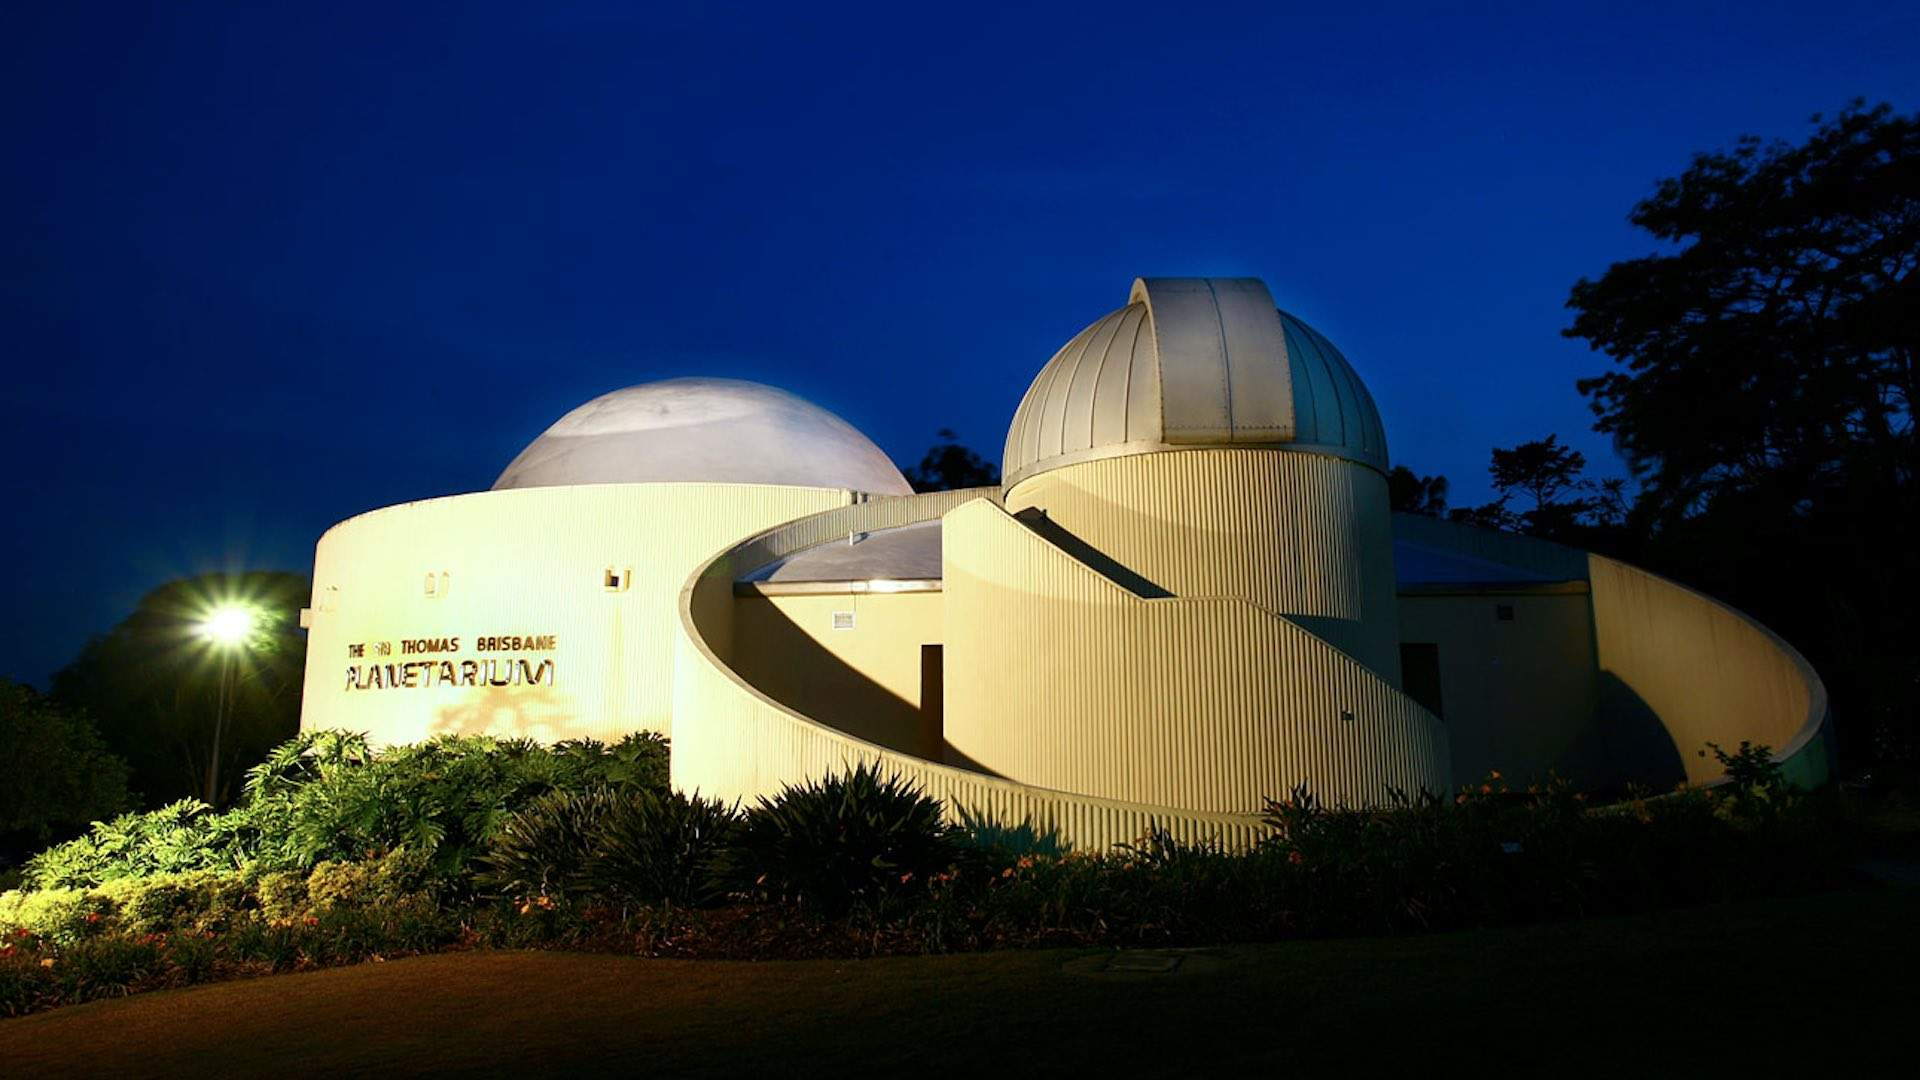 Sir Thomas Brisbane planetarium at Mt Coot-tha